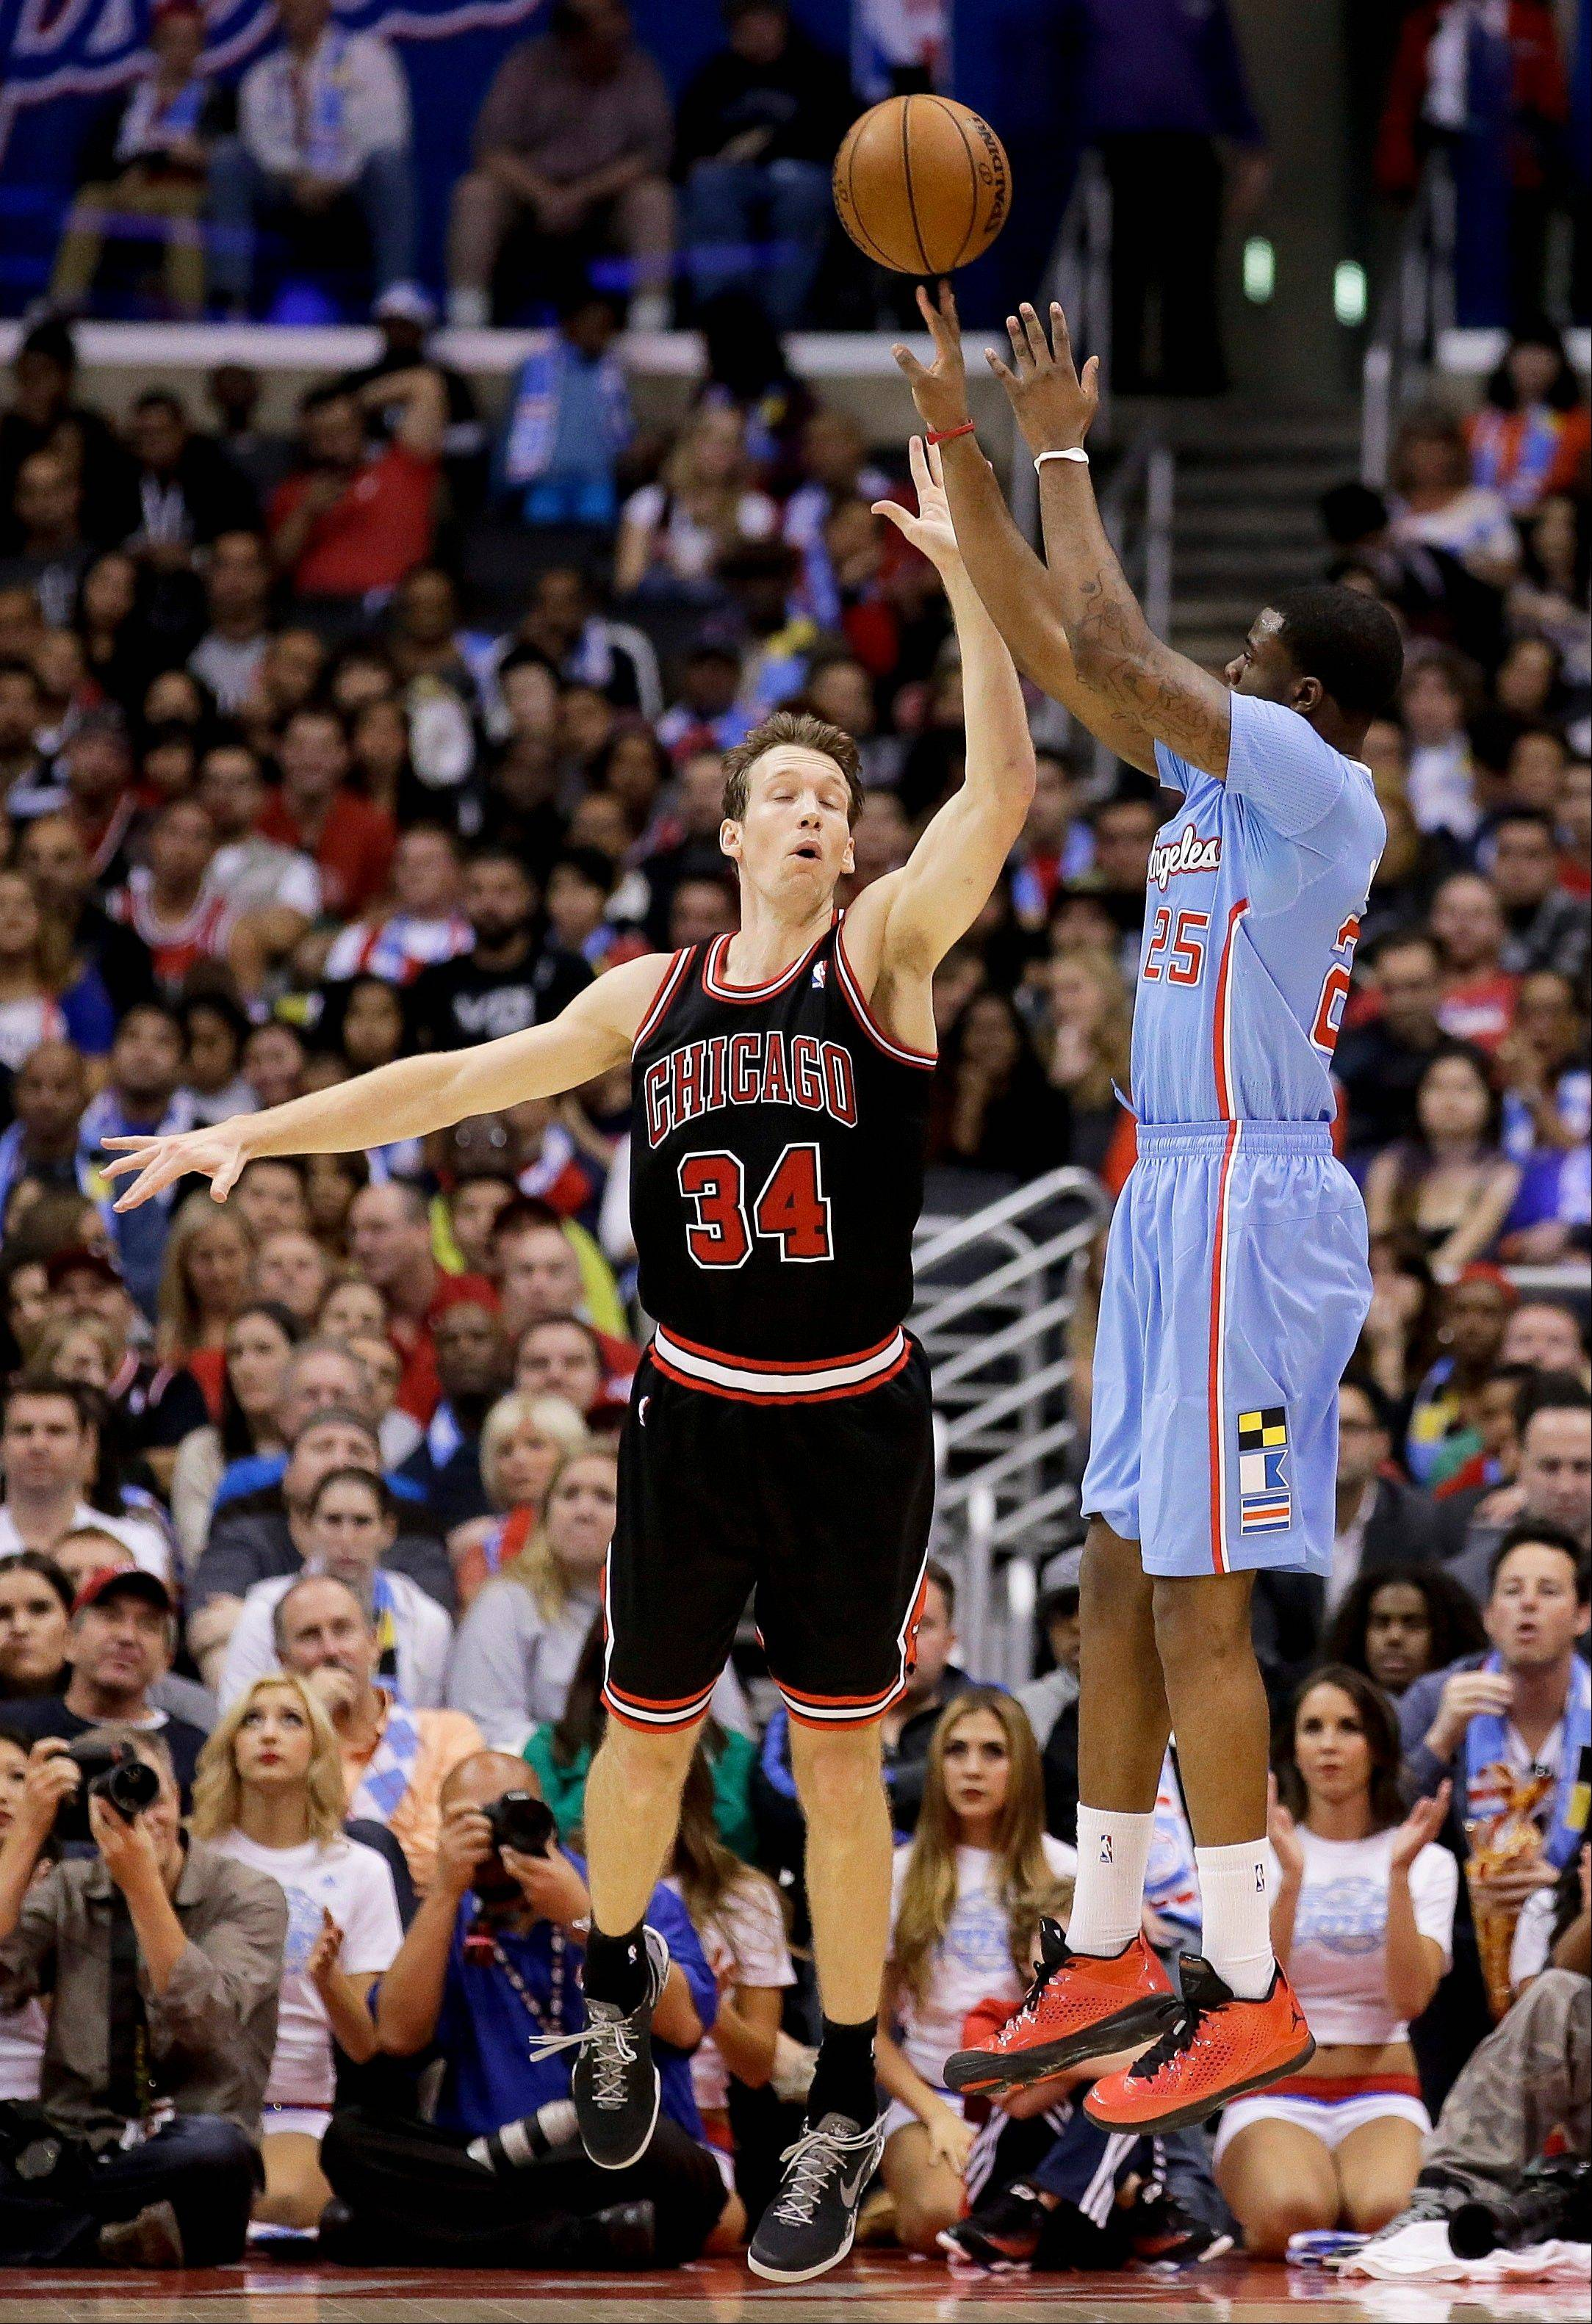 Los Angeles Clippers guard Reggie Bullock, right, scores over Chicago Bulls forward Mike Dunleavy during the second half of an NBA basketball game in Los Angeles, Sunday, Nov. 24, 2013. The Clippers won 121-82.